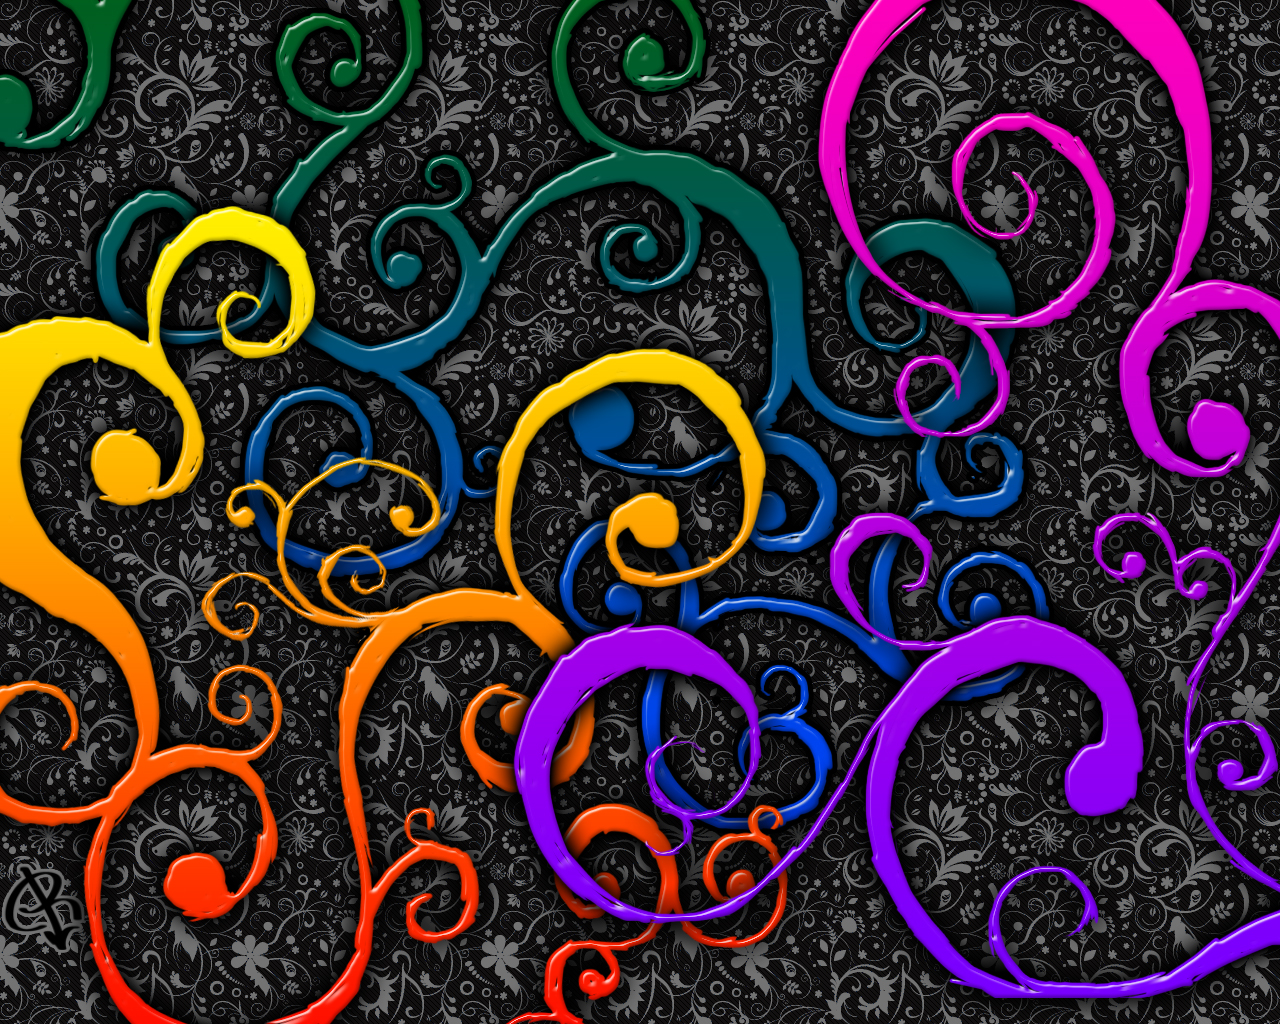 http://2.bp.blogspot.com/-ev-RTbwTv-w/Tan6Ih0-g_I/AAAAAAAAHKs/cB0_M8R62B4/s1600/Colorful_Flourish_Wallpaper_by_BakerZero417.jpg